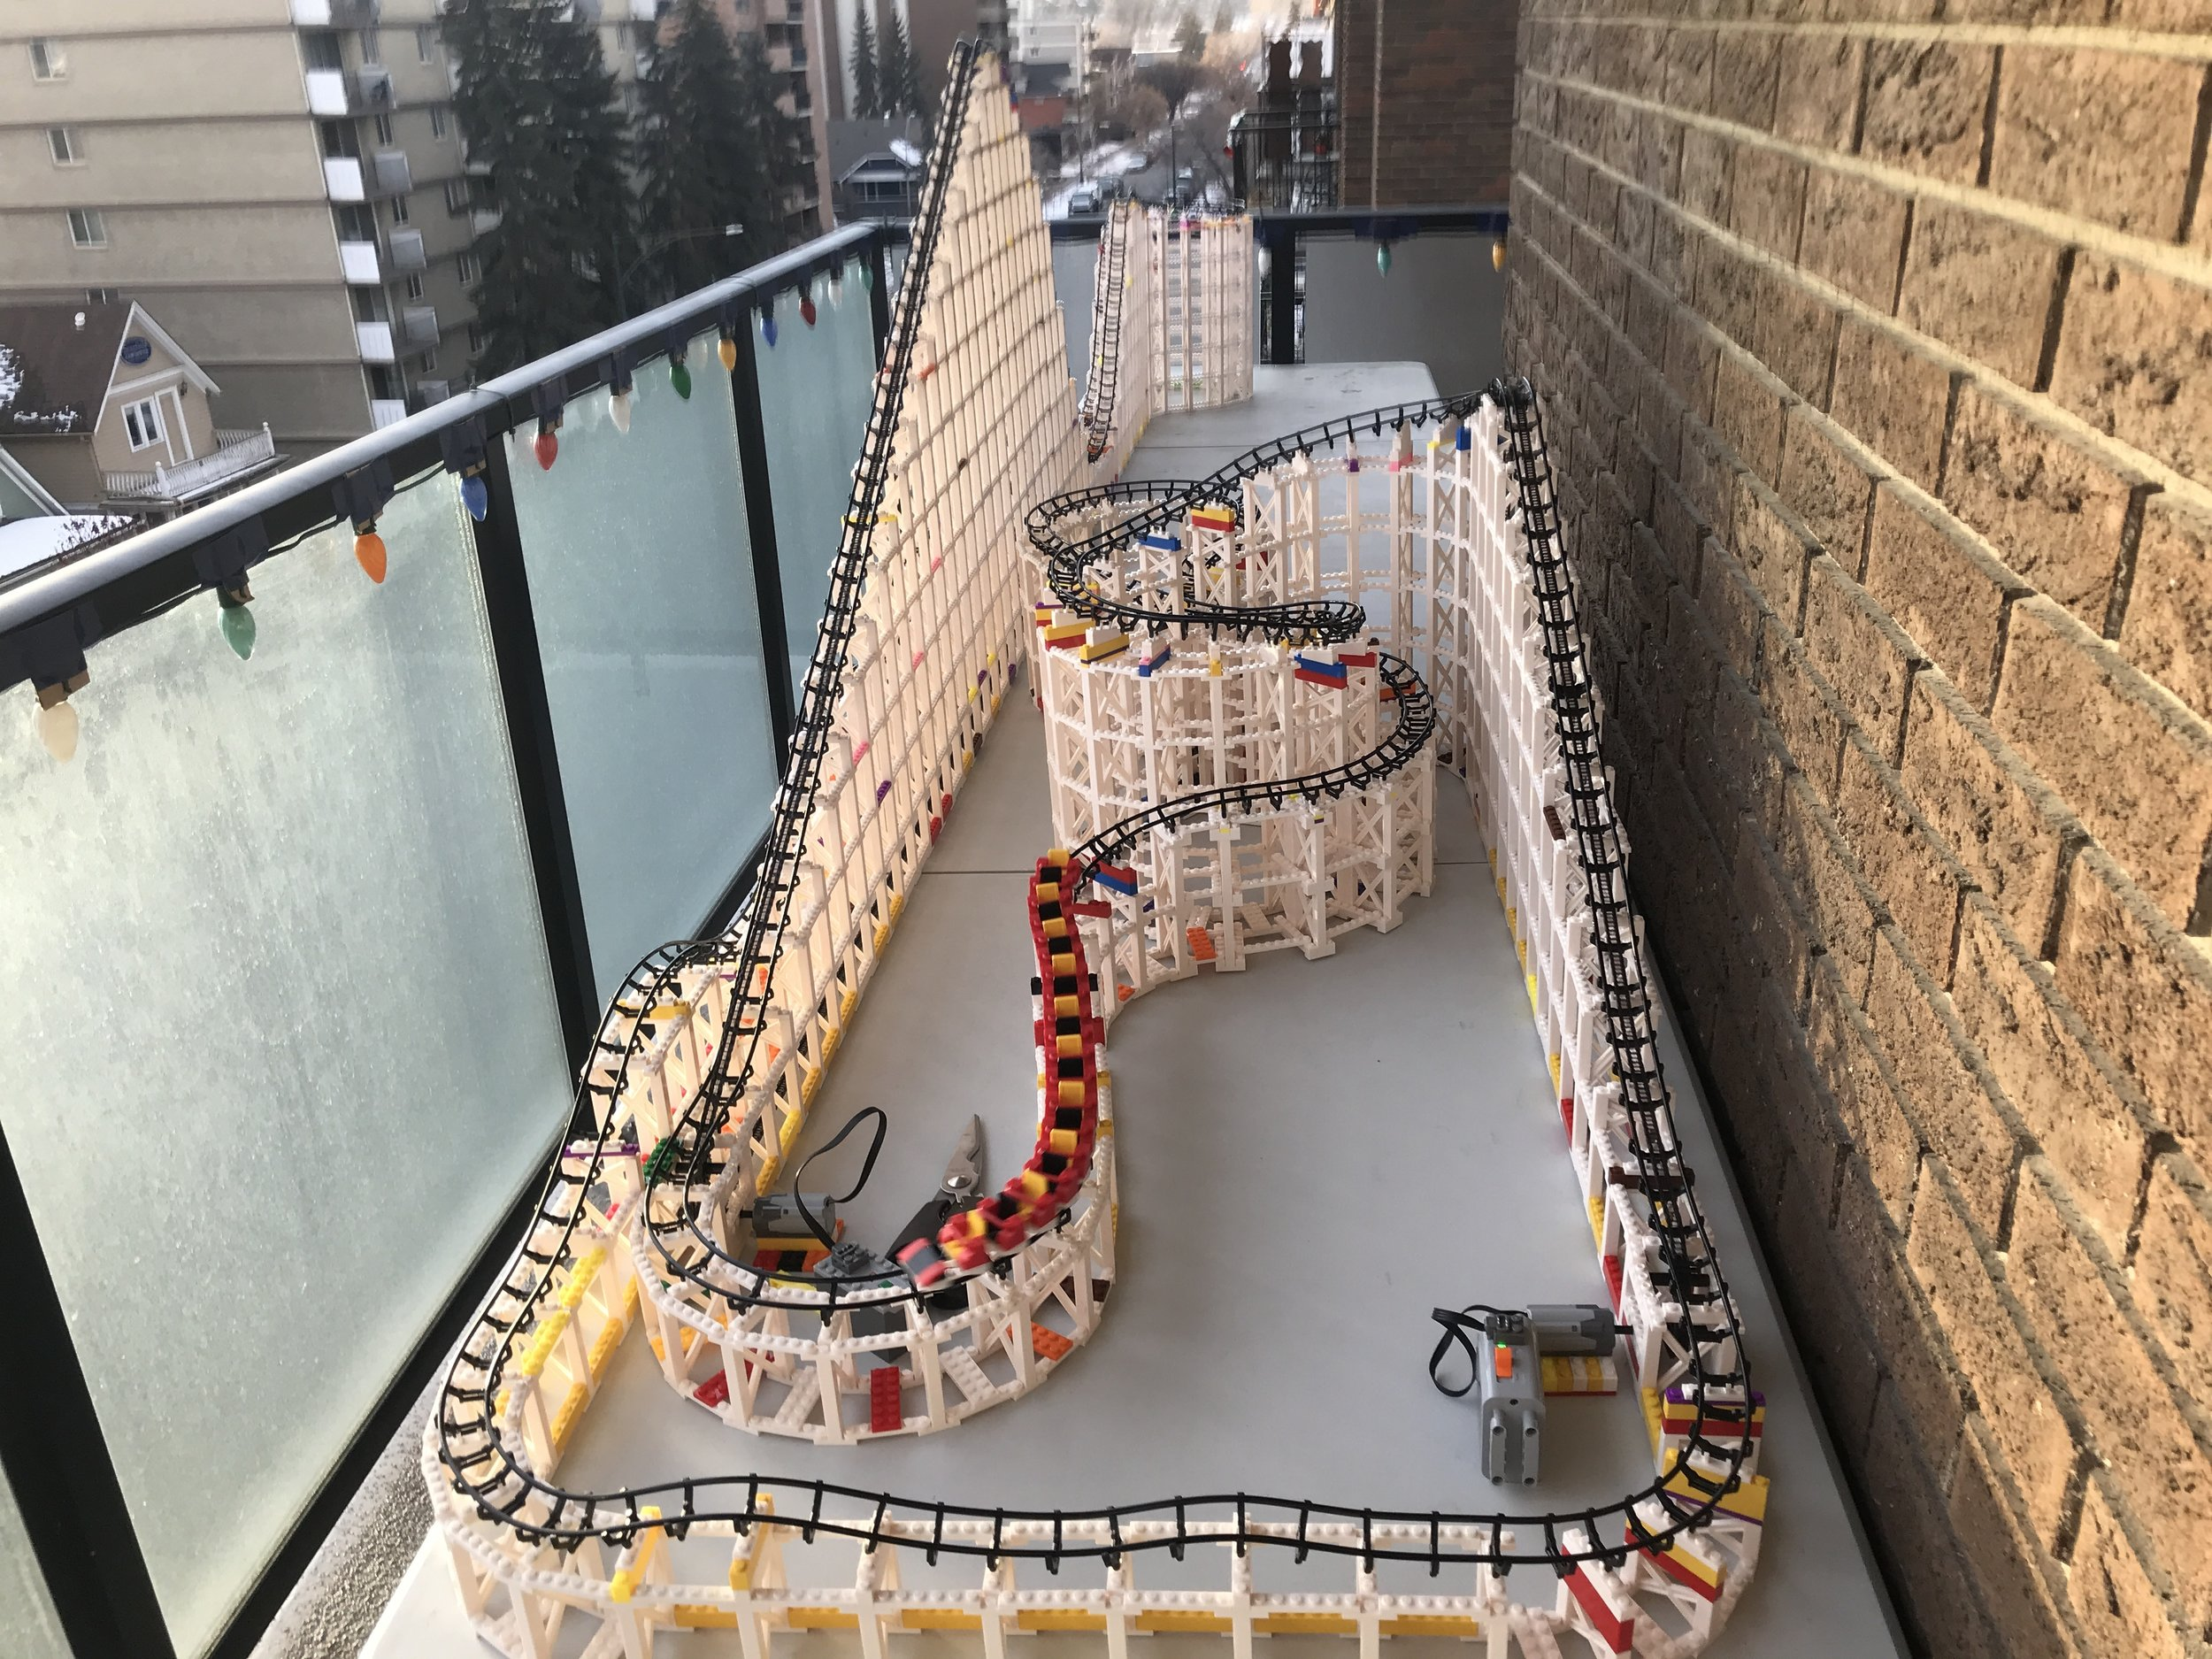 This was built with nine Cyclone sets plus some other bricks and two motors. It's 12 feet long and 3 feet wide.